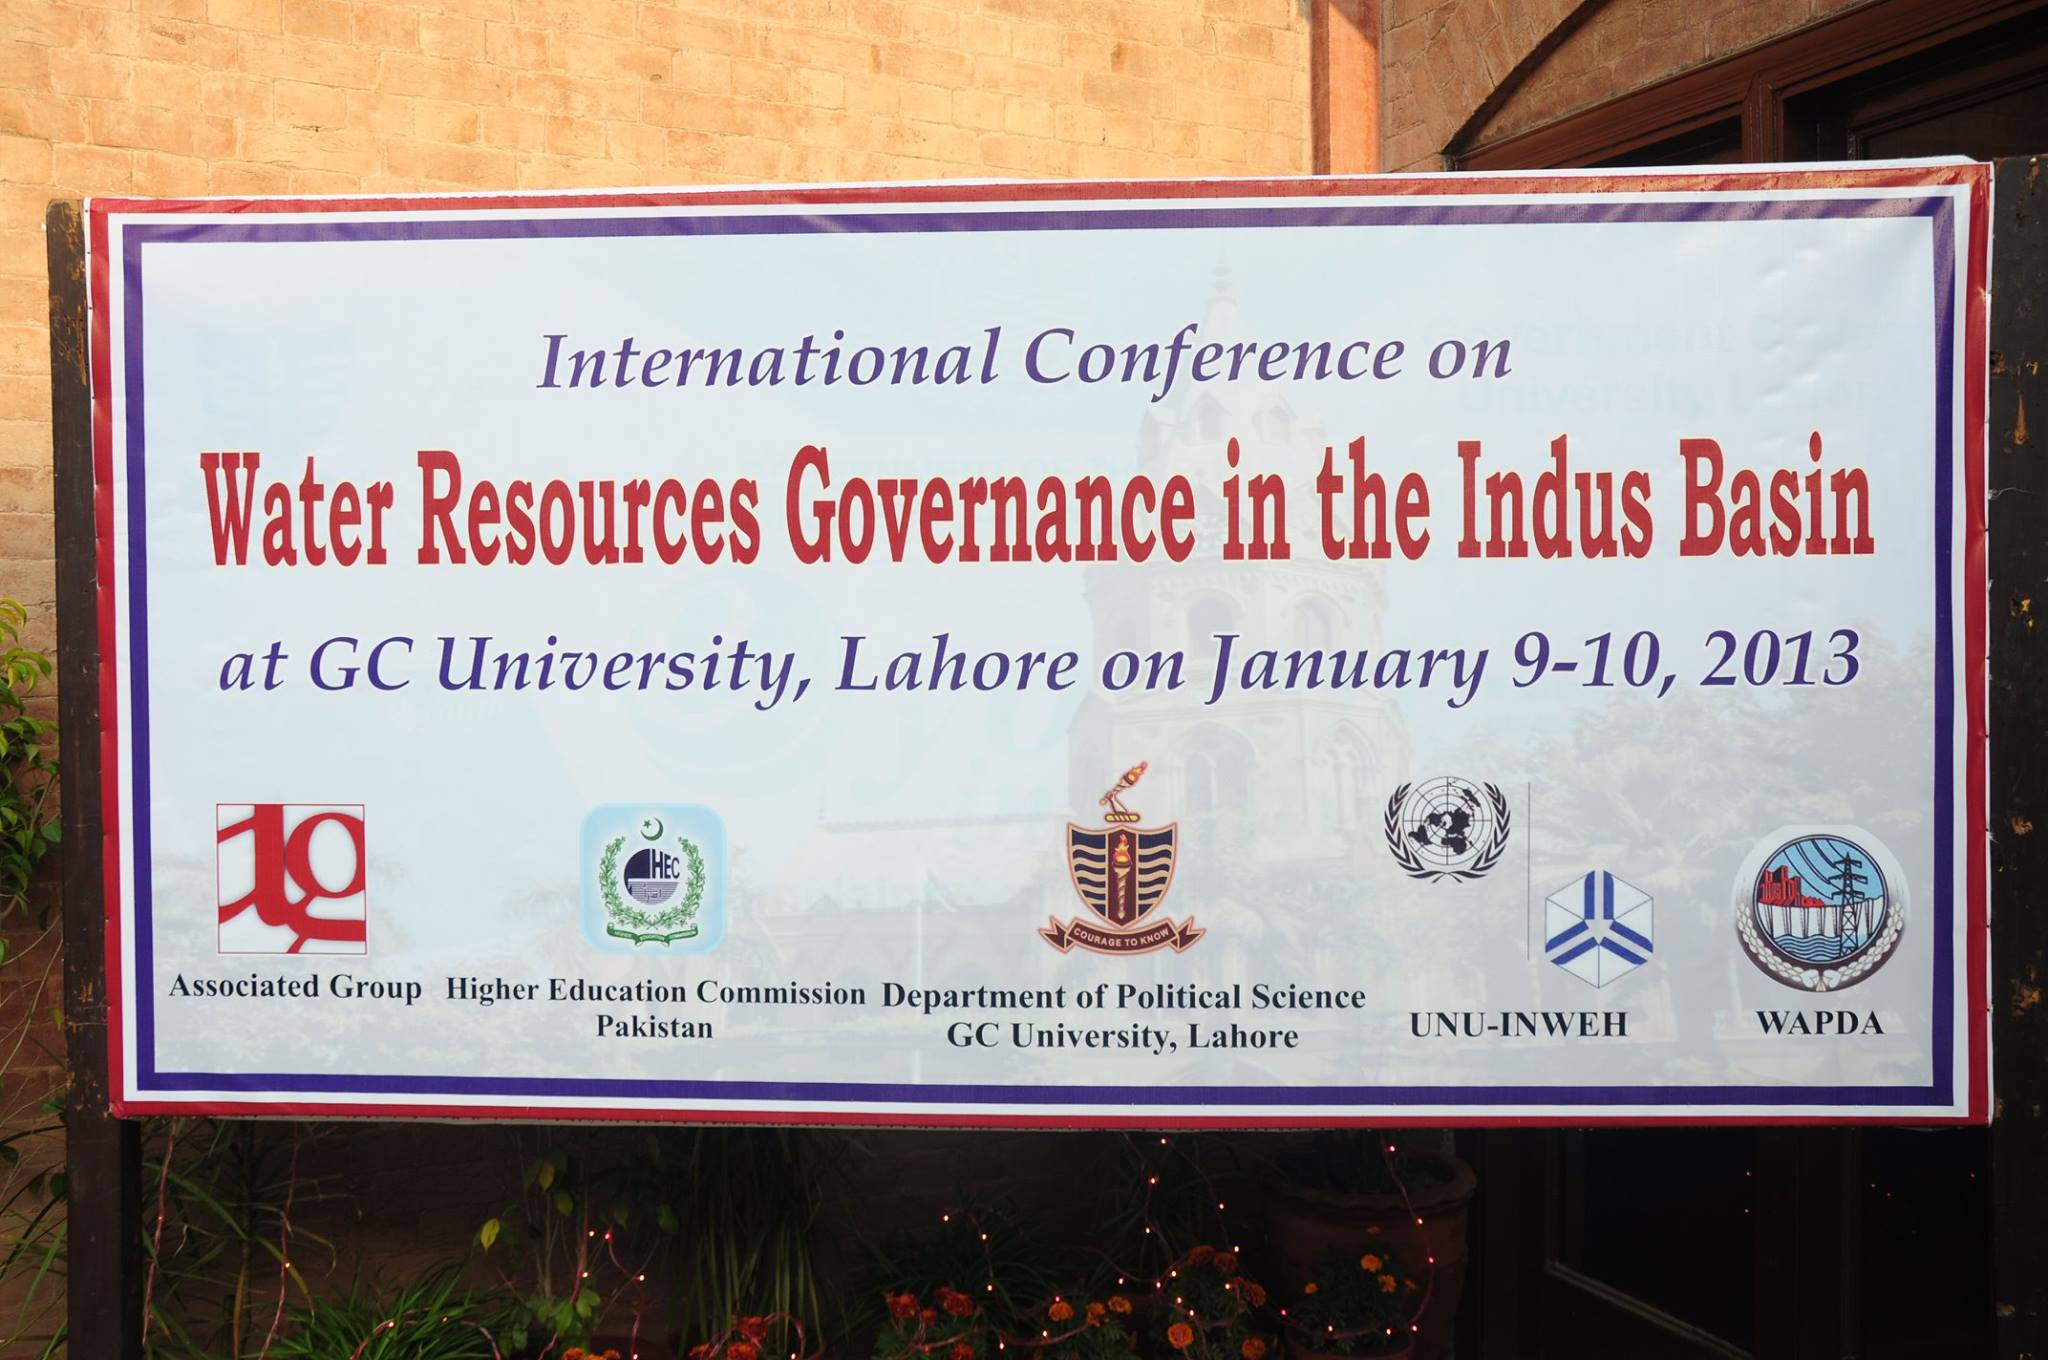 Conference Venue: Bukhari Auditorium, GC University, Lahore